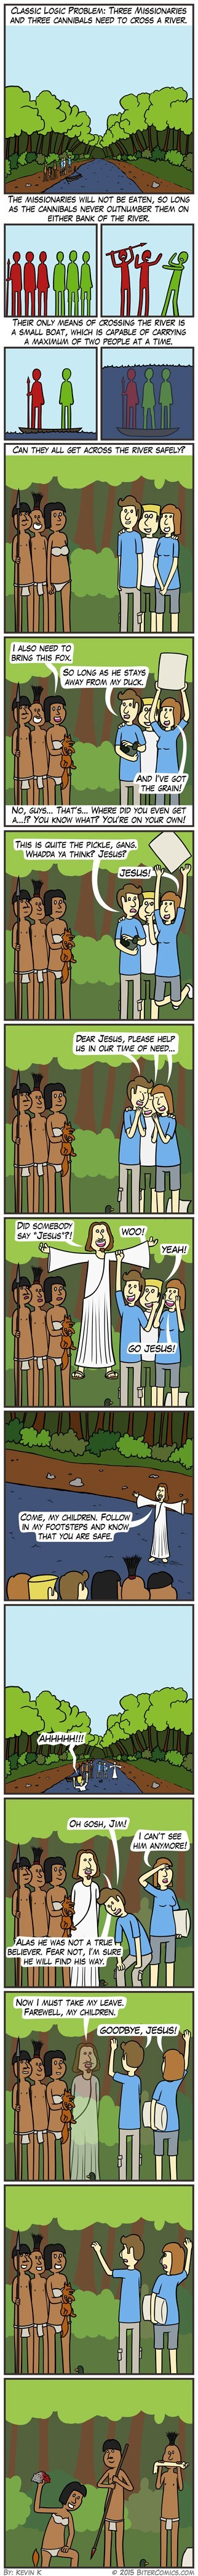 jesus sad but true logic cannibals web comics - 8540516608